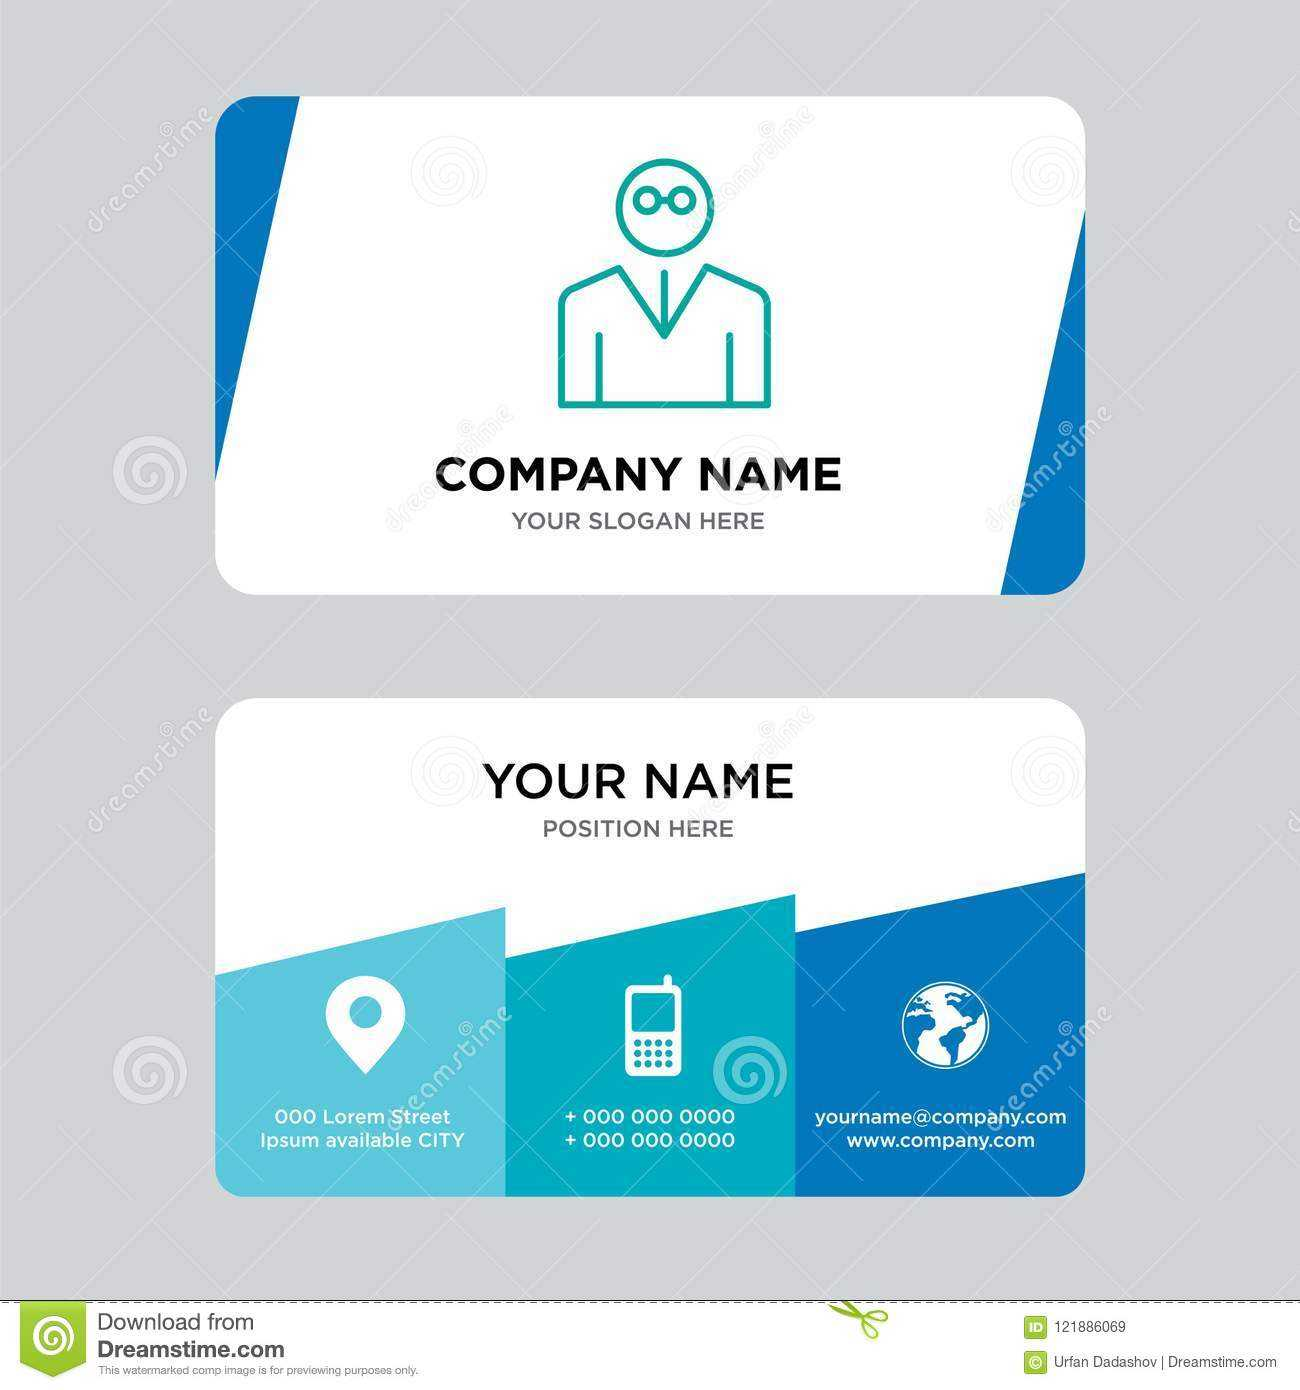 Teacher Business Card Design Template, Visiting For Your with regard to Teacher Id Card Template